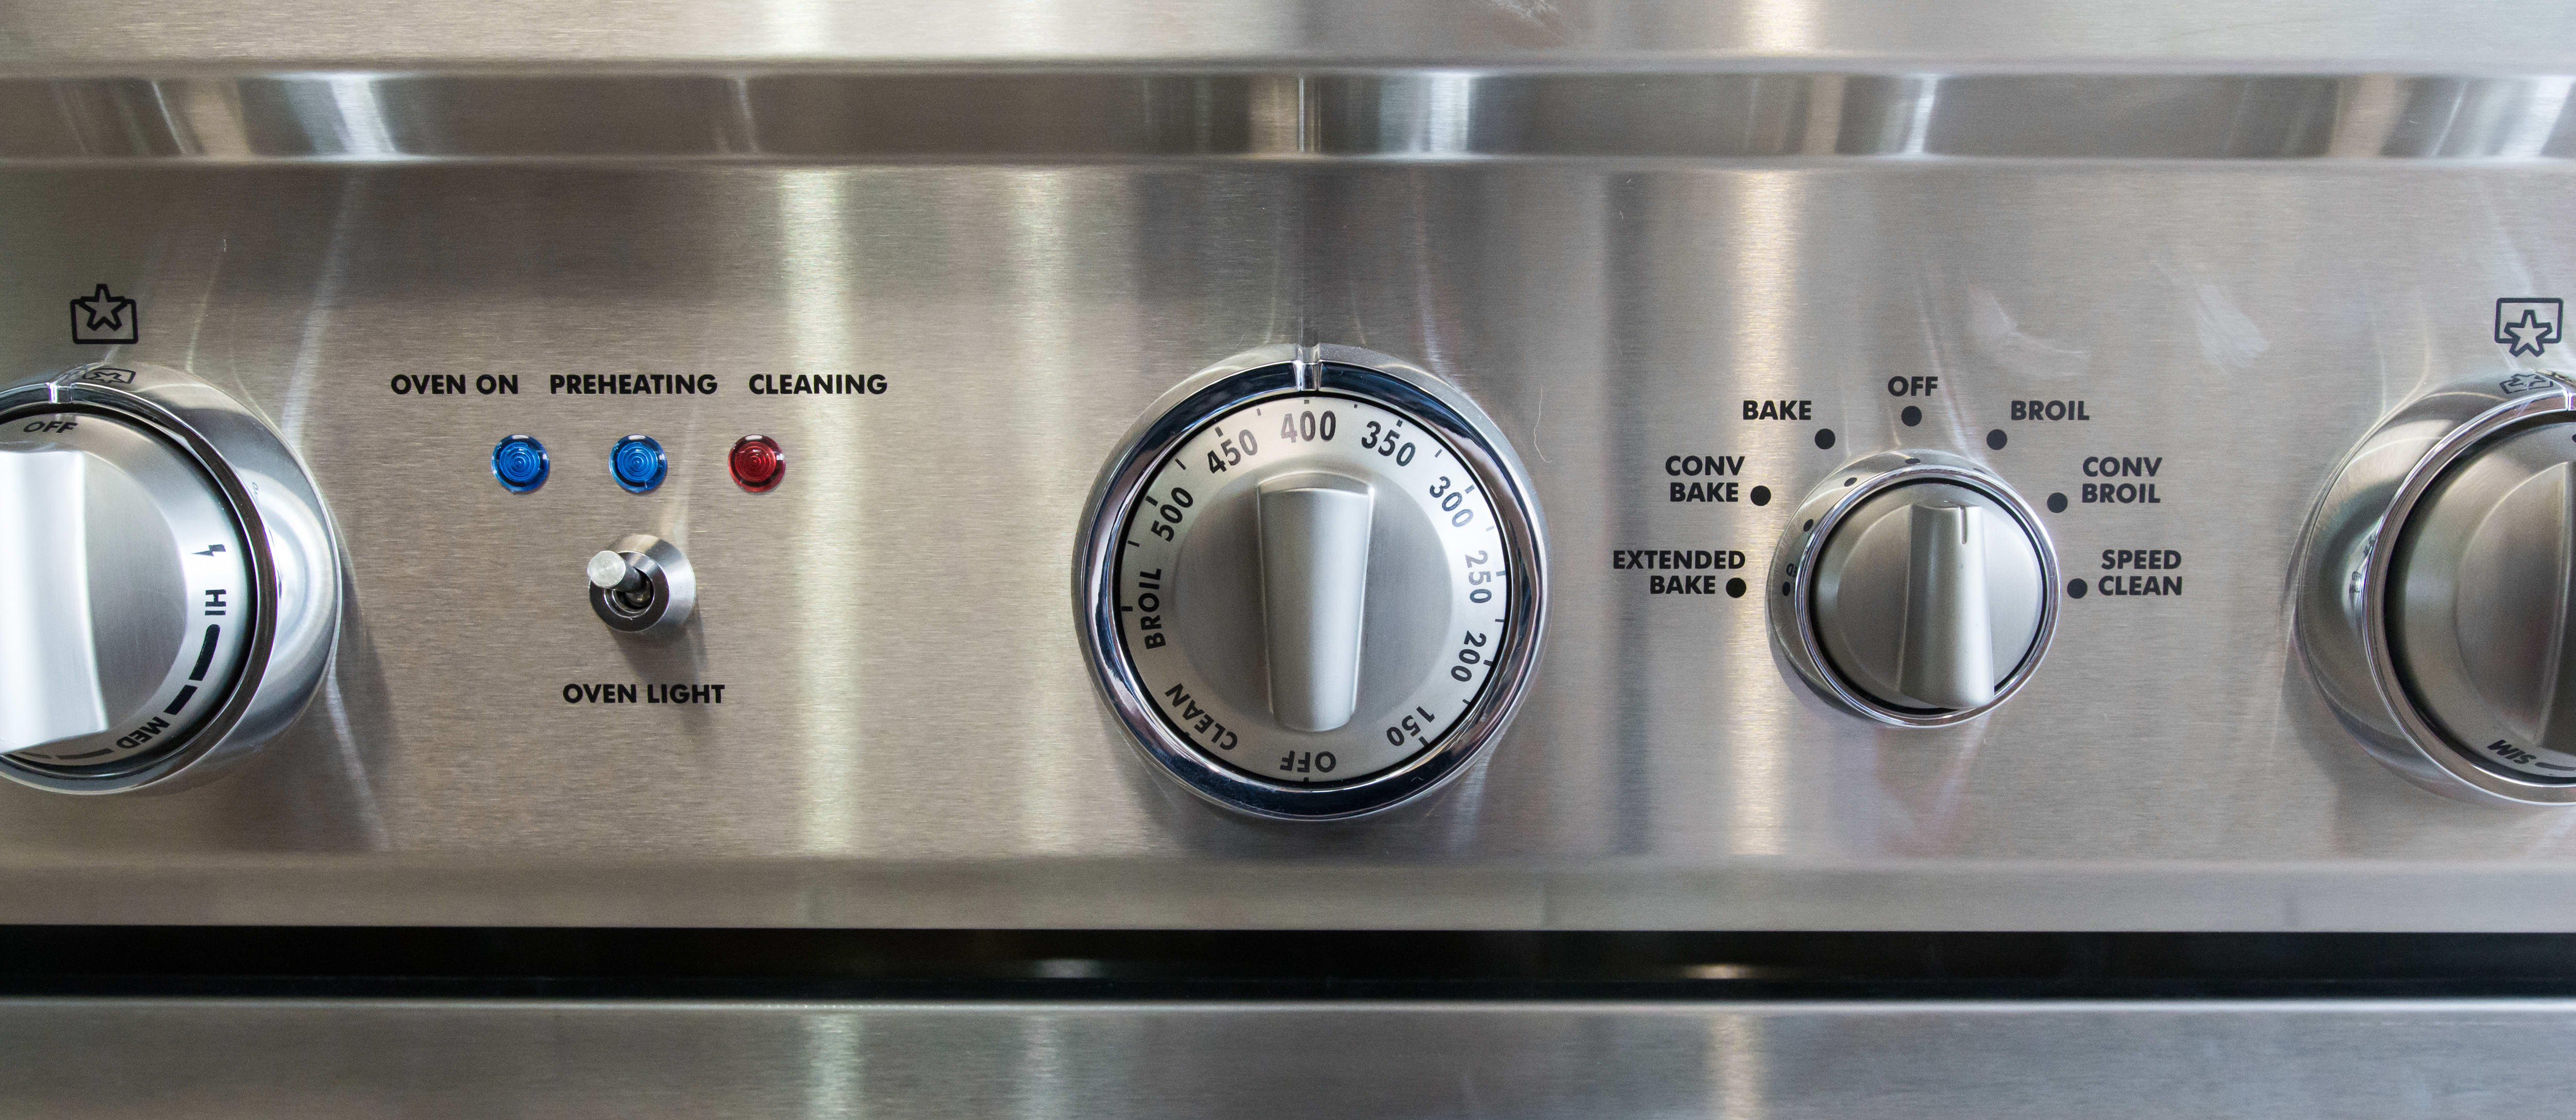 Control knobs for oven